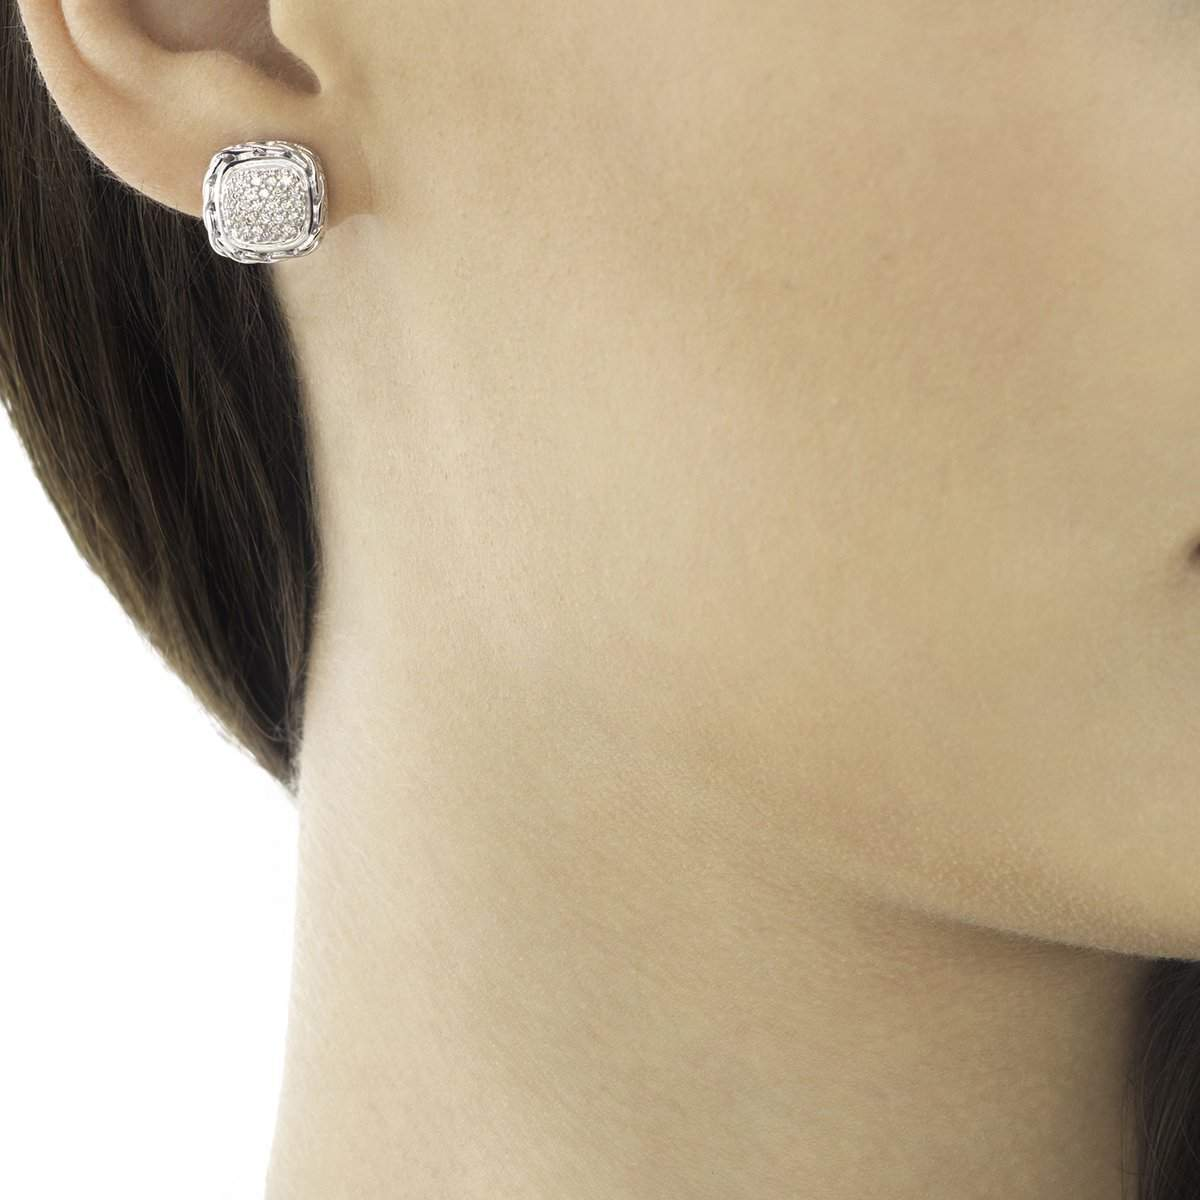 Classic Chain Silver Diamond Pave Small Square Earrings - EBP92372DI-John Hardy-Renee Taylor Gallery